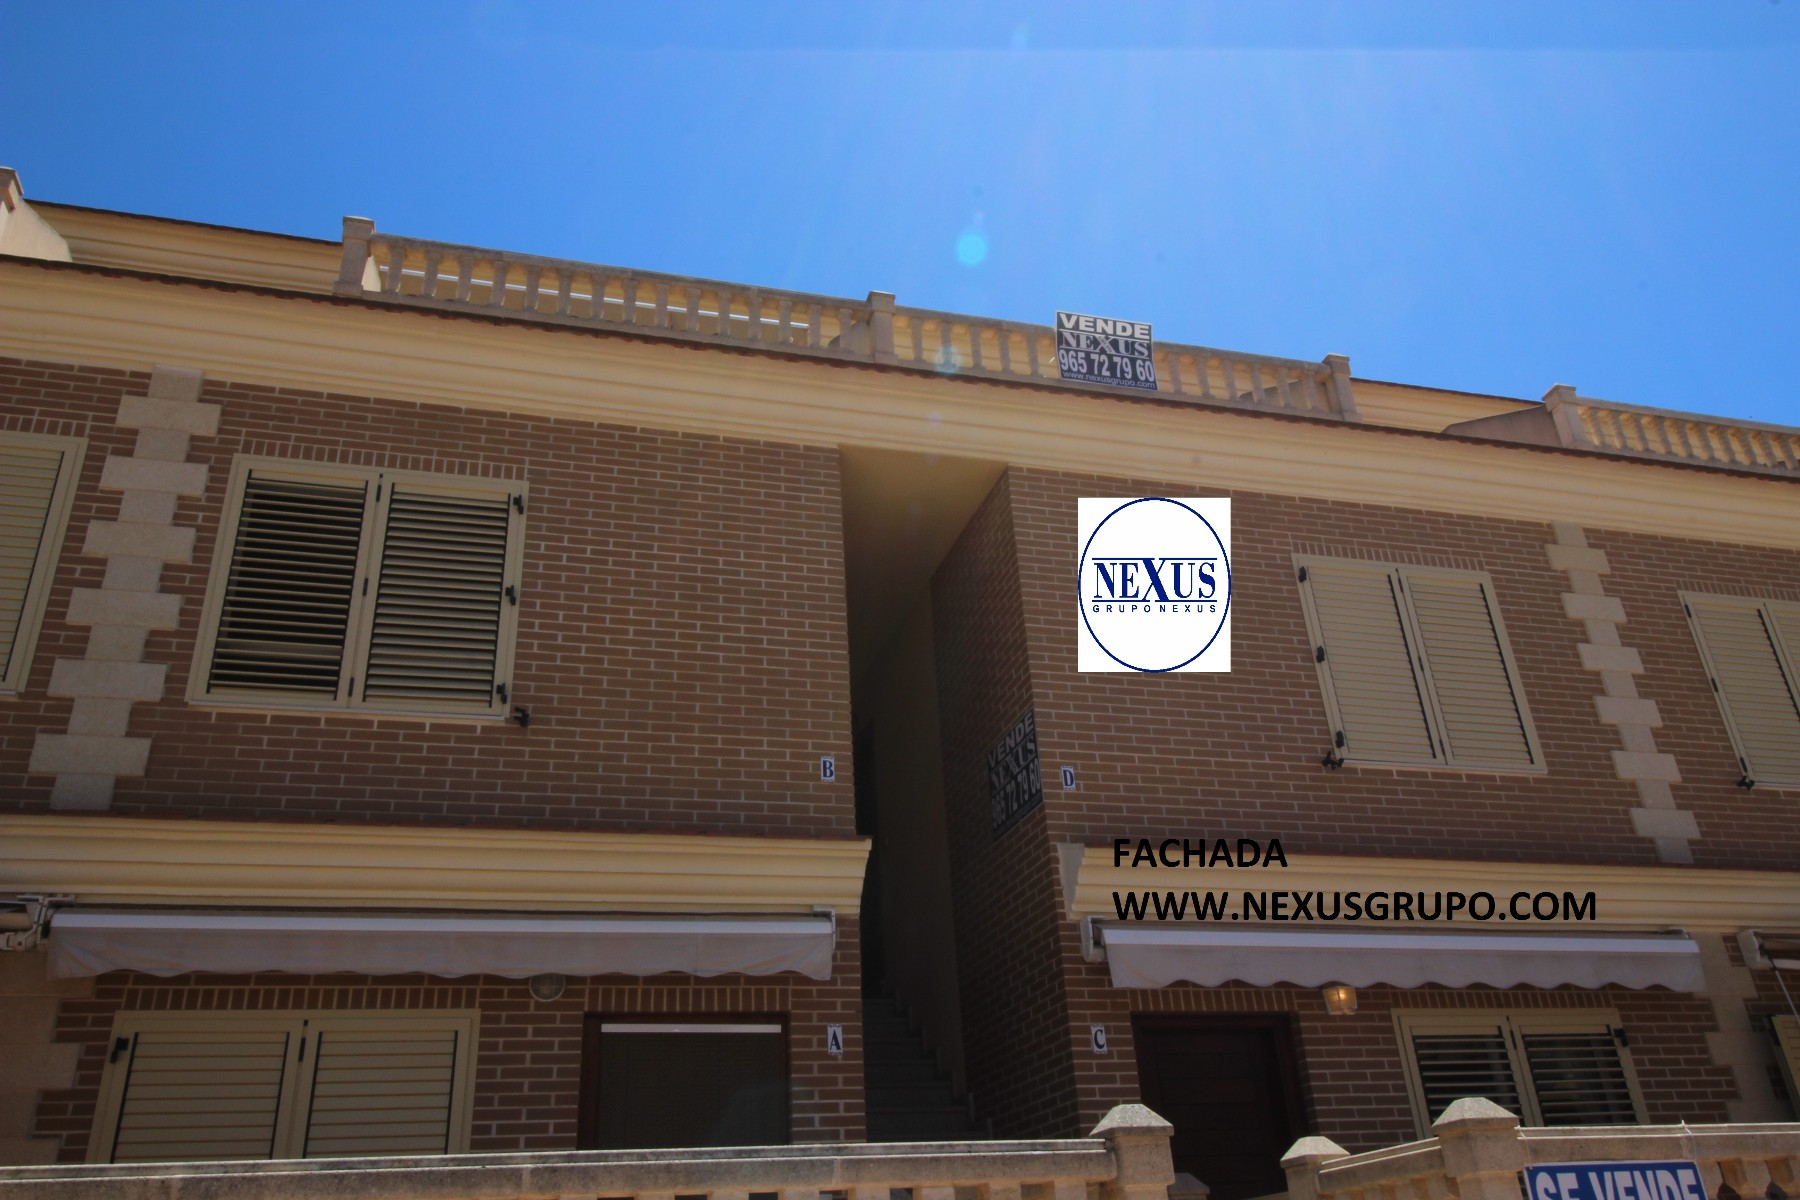 ​Real Estate Grupo Nexus sells an excellent duplex apartment, walking distance to the beach!